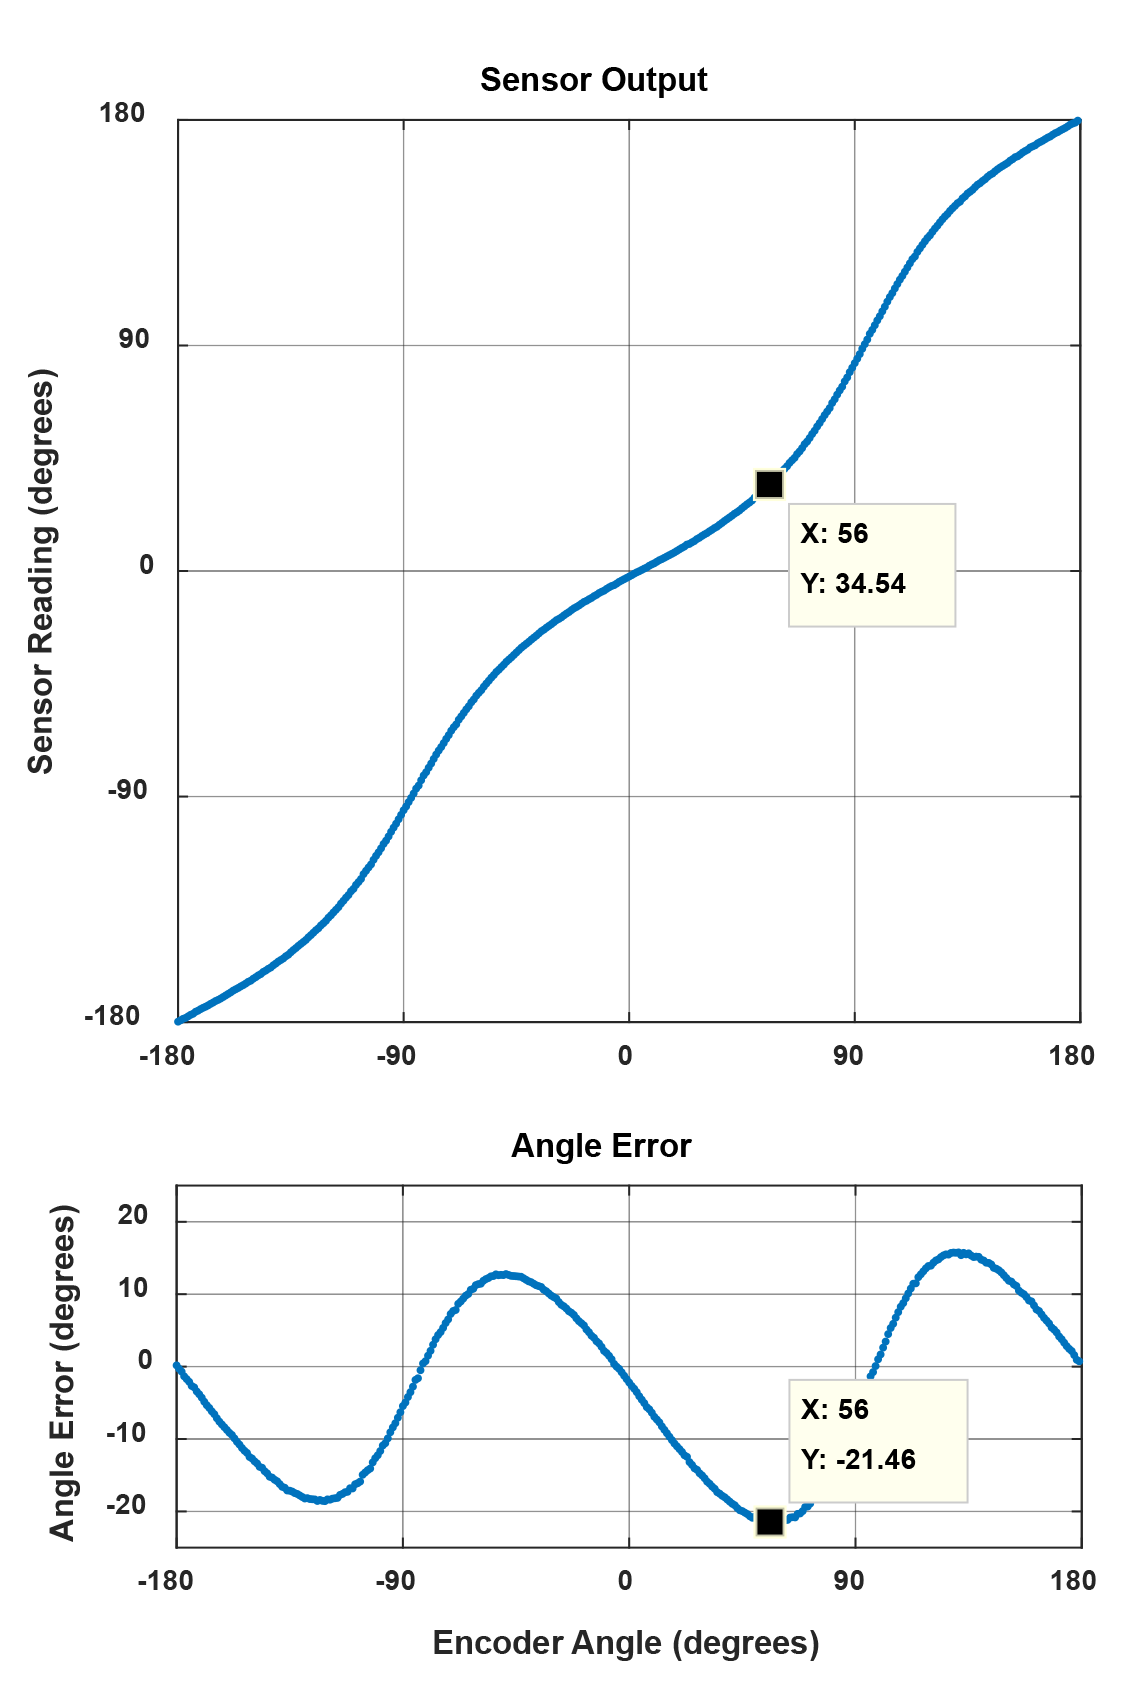 Figure 3: Angle error compared to sensor output plot